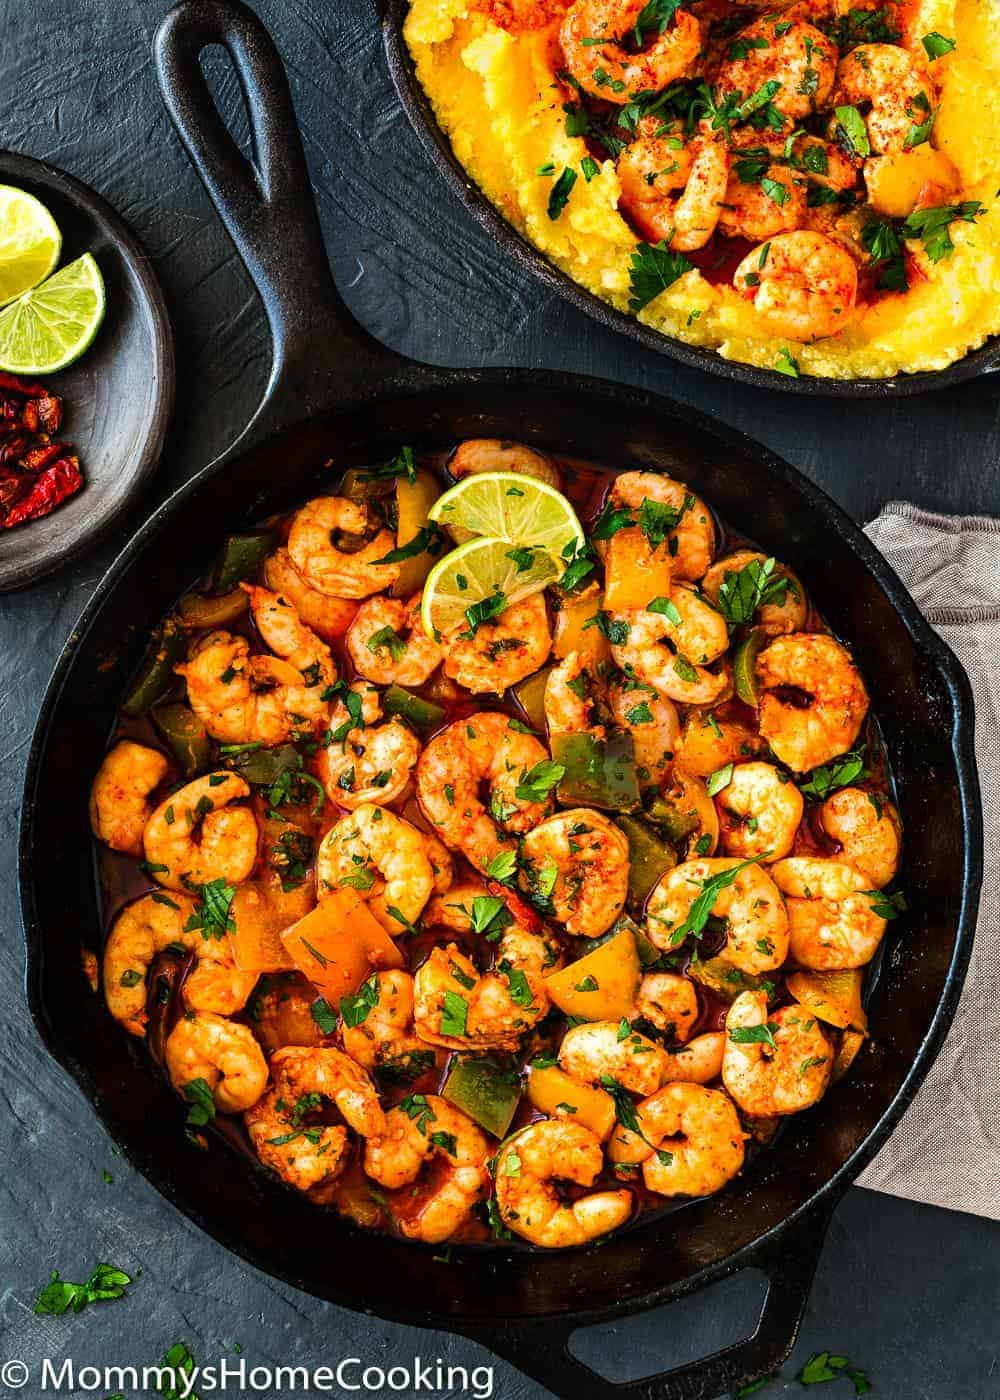 Easy Peri Peri Shrimp in a cast iron skillet